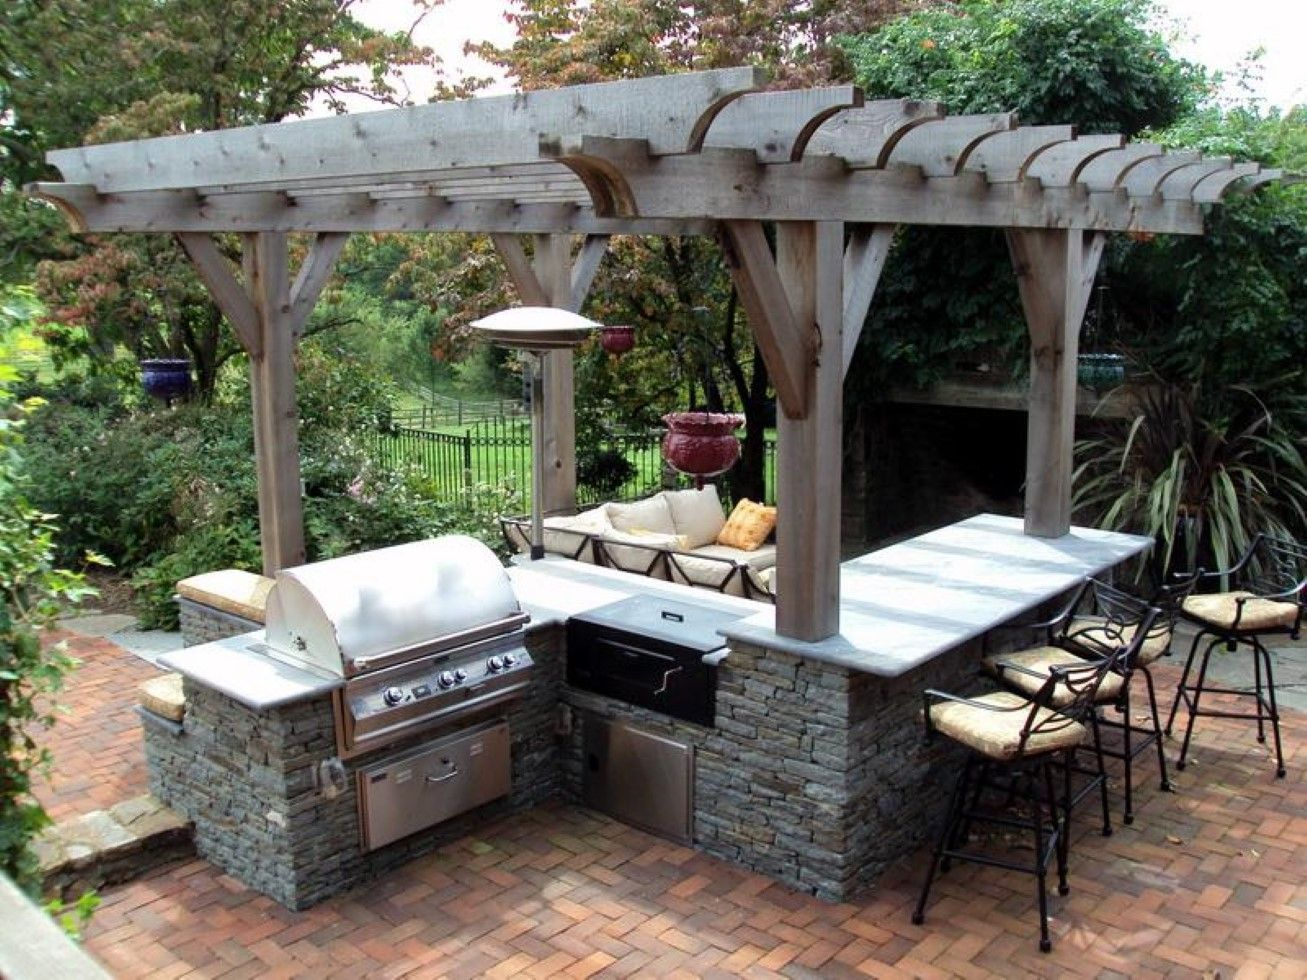 Effigy of Outdoor Kitchen Layout – How to Welcome the Christmas Better